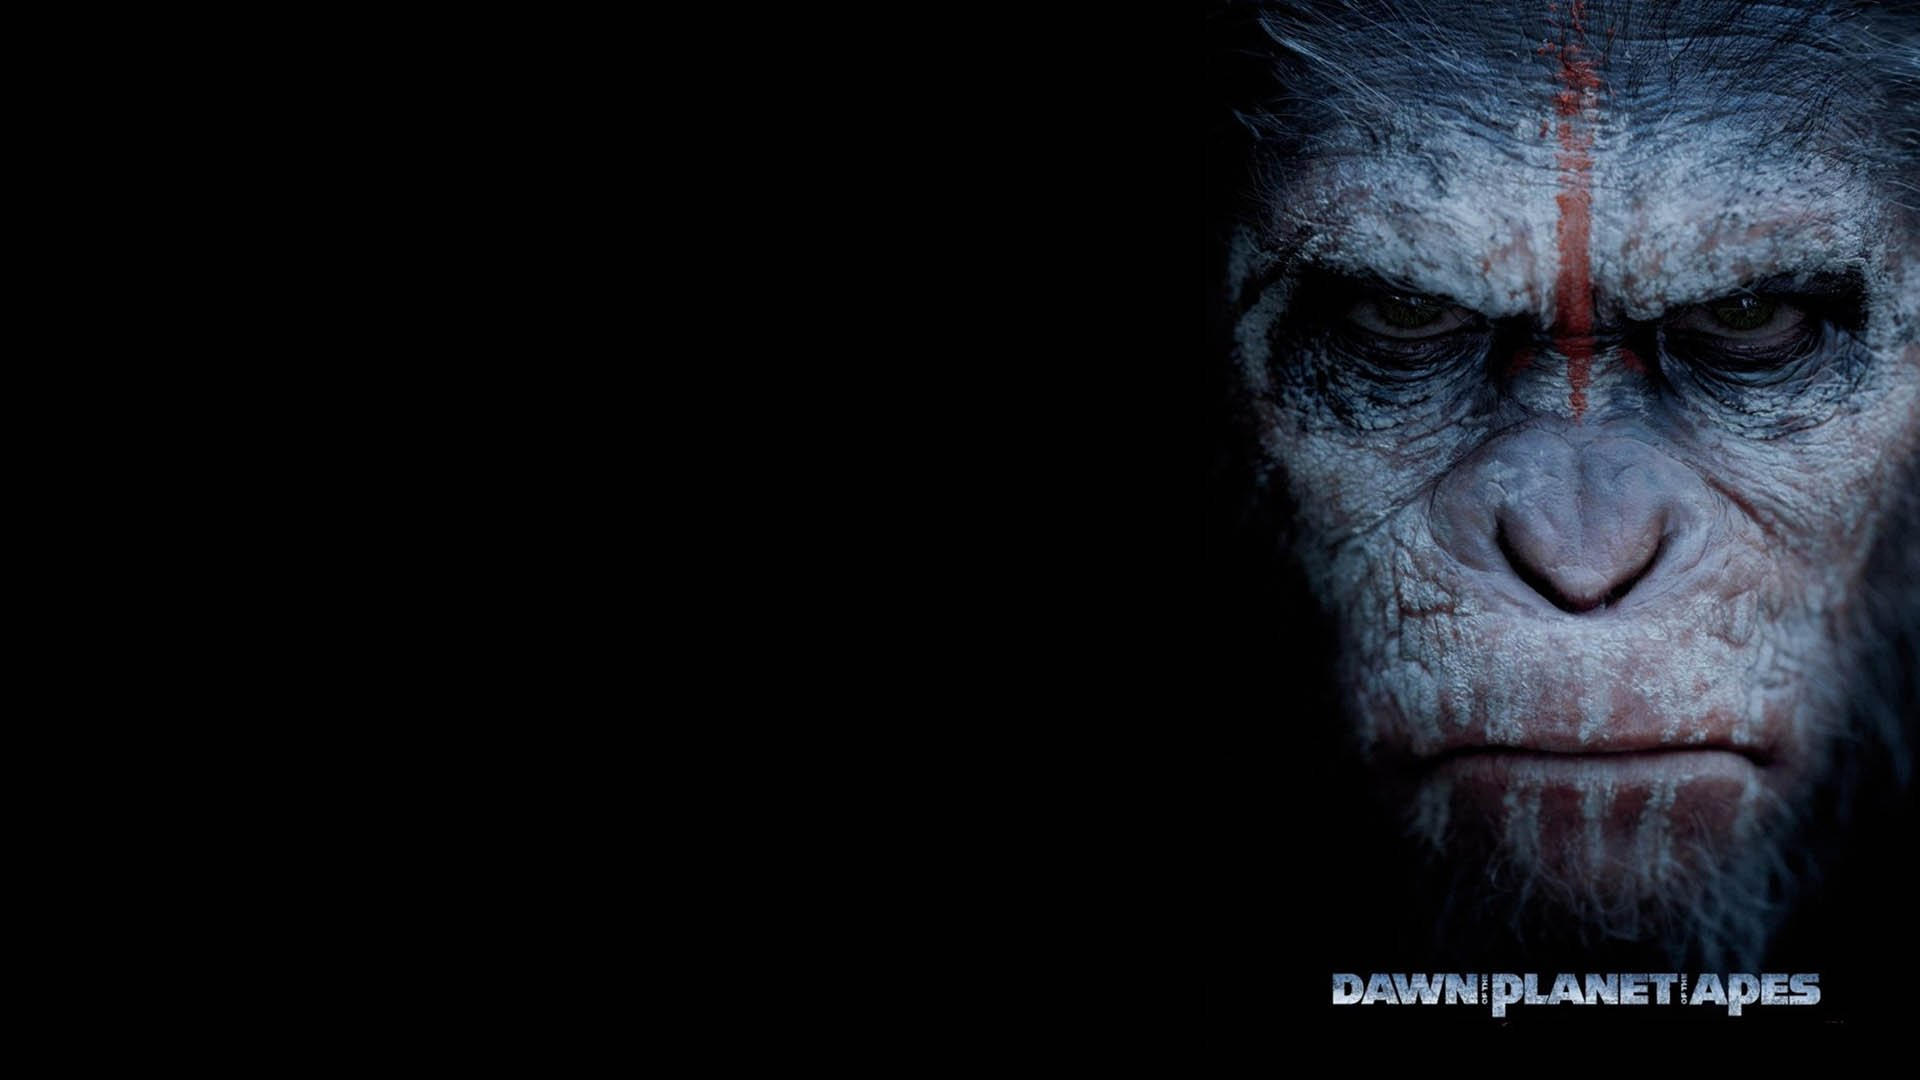 کاور فیلم dawn of the planet of the apes